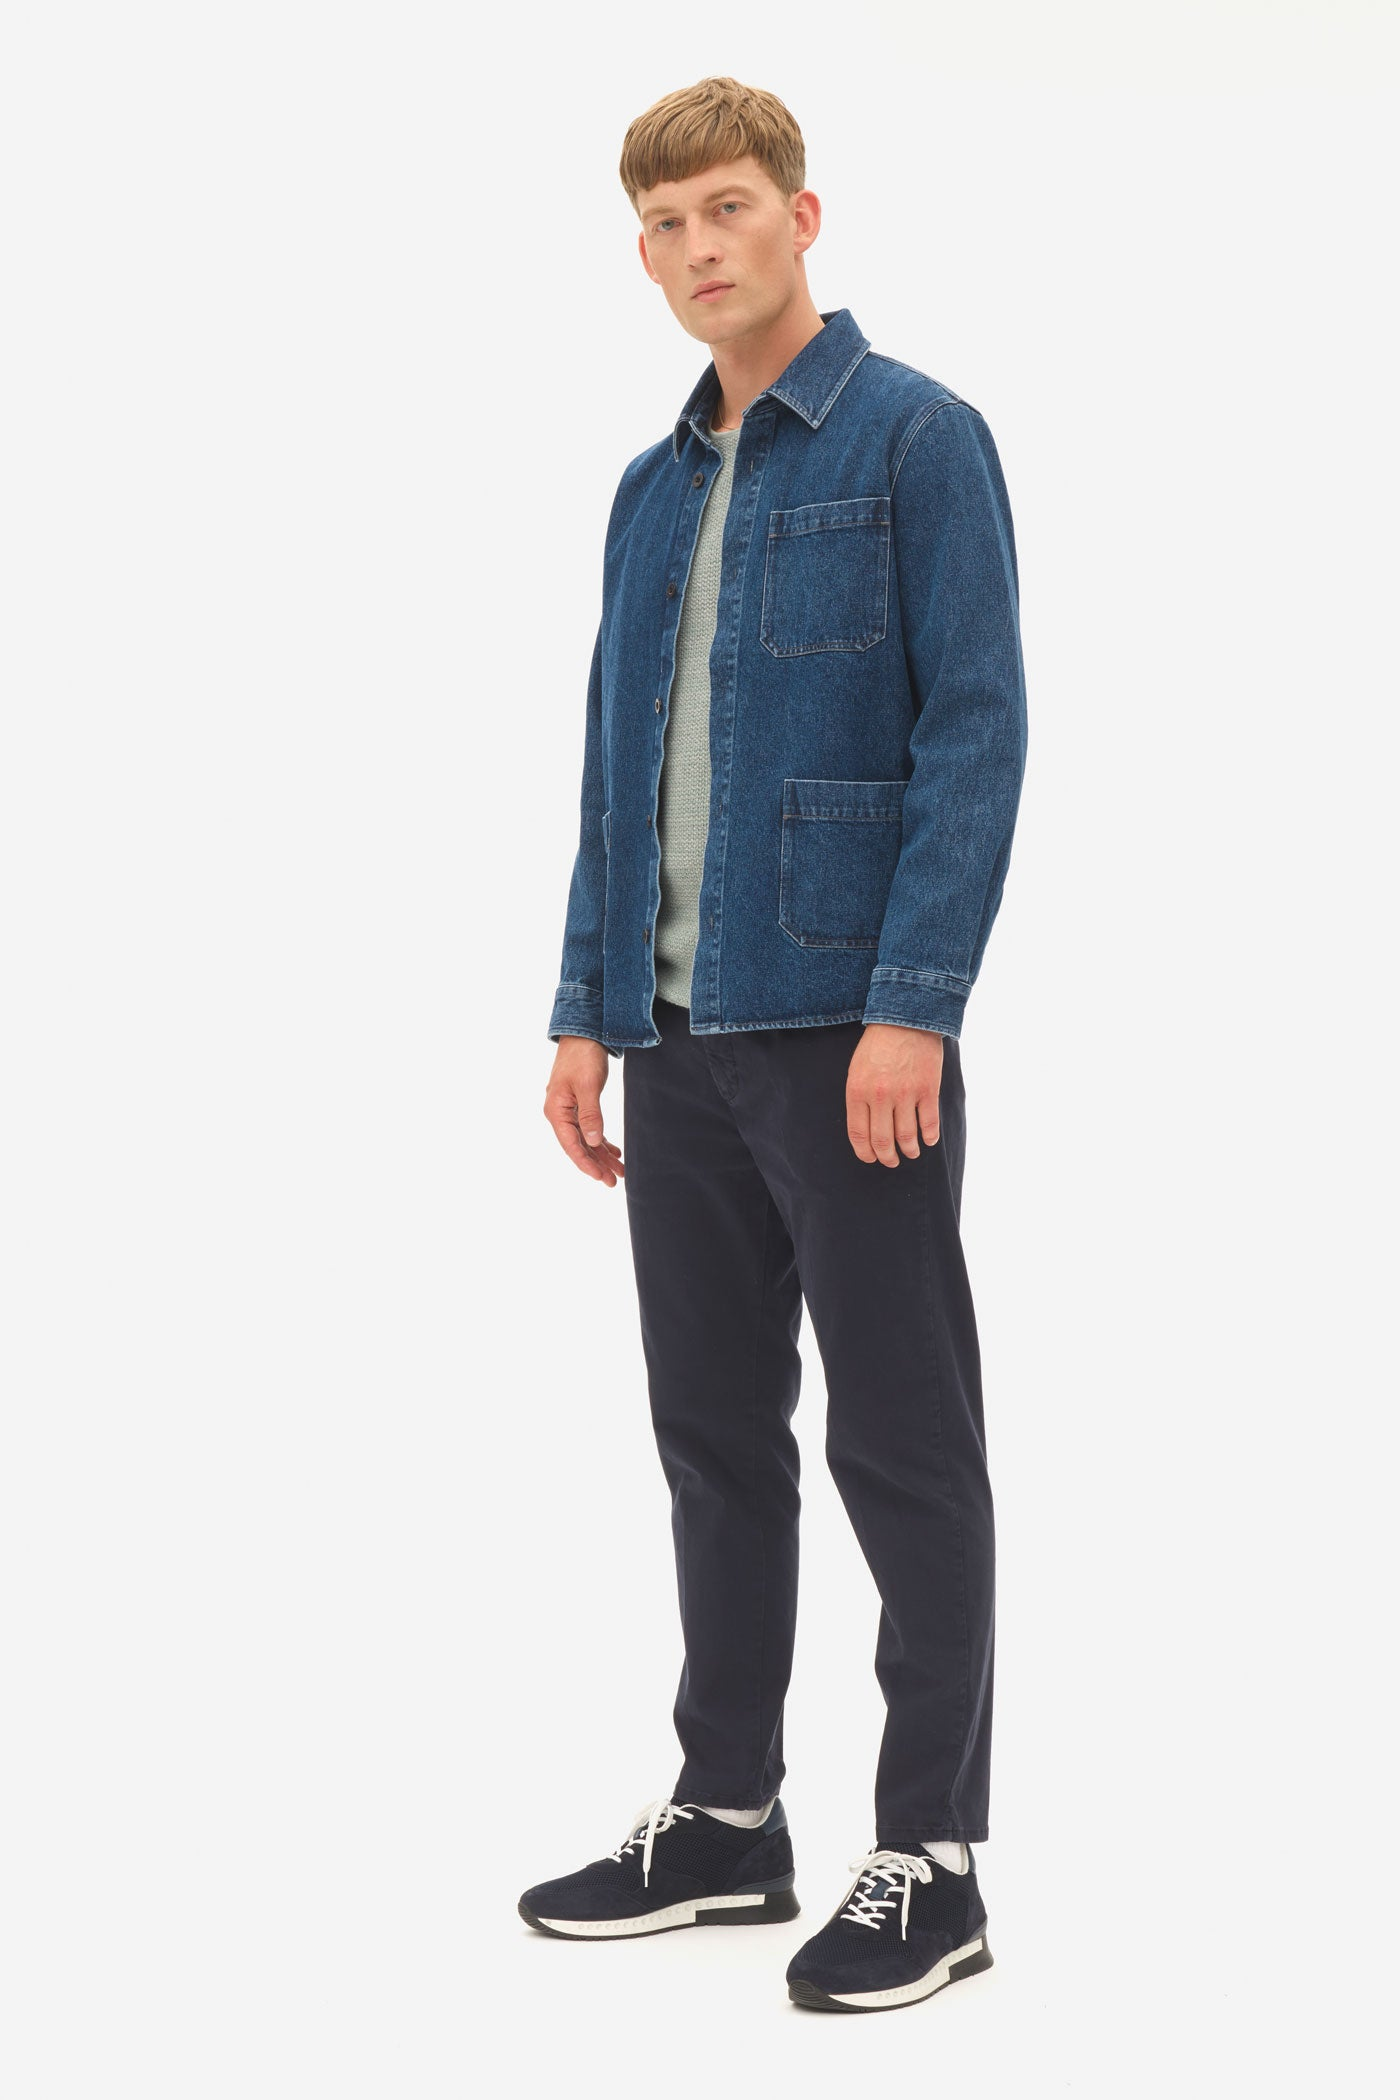 NAB0805D1 dark denim overshirt